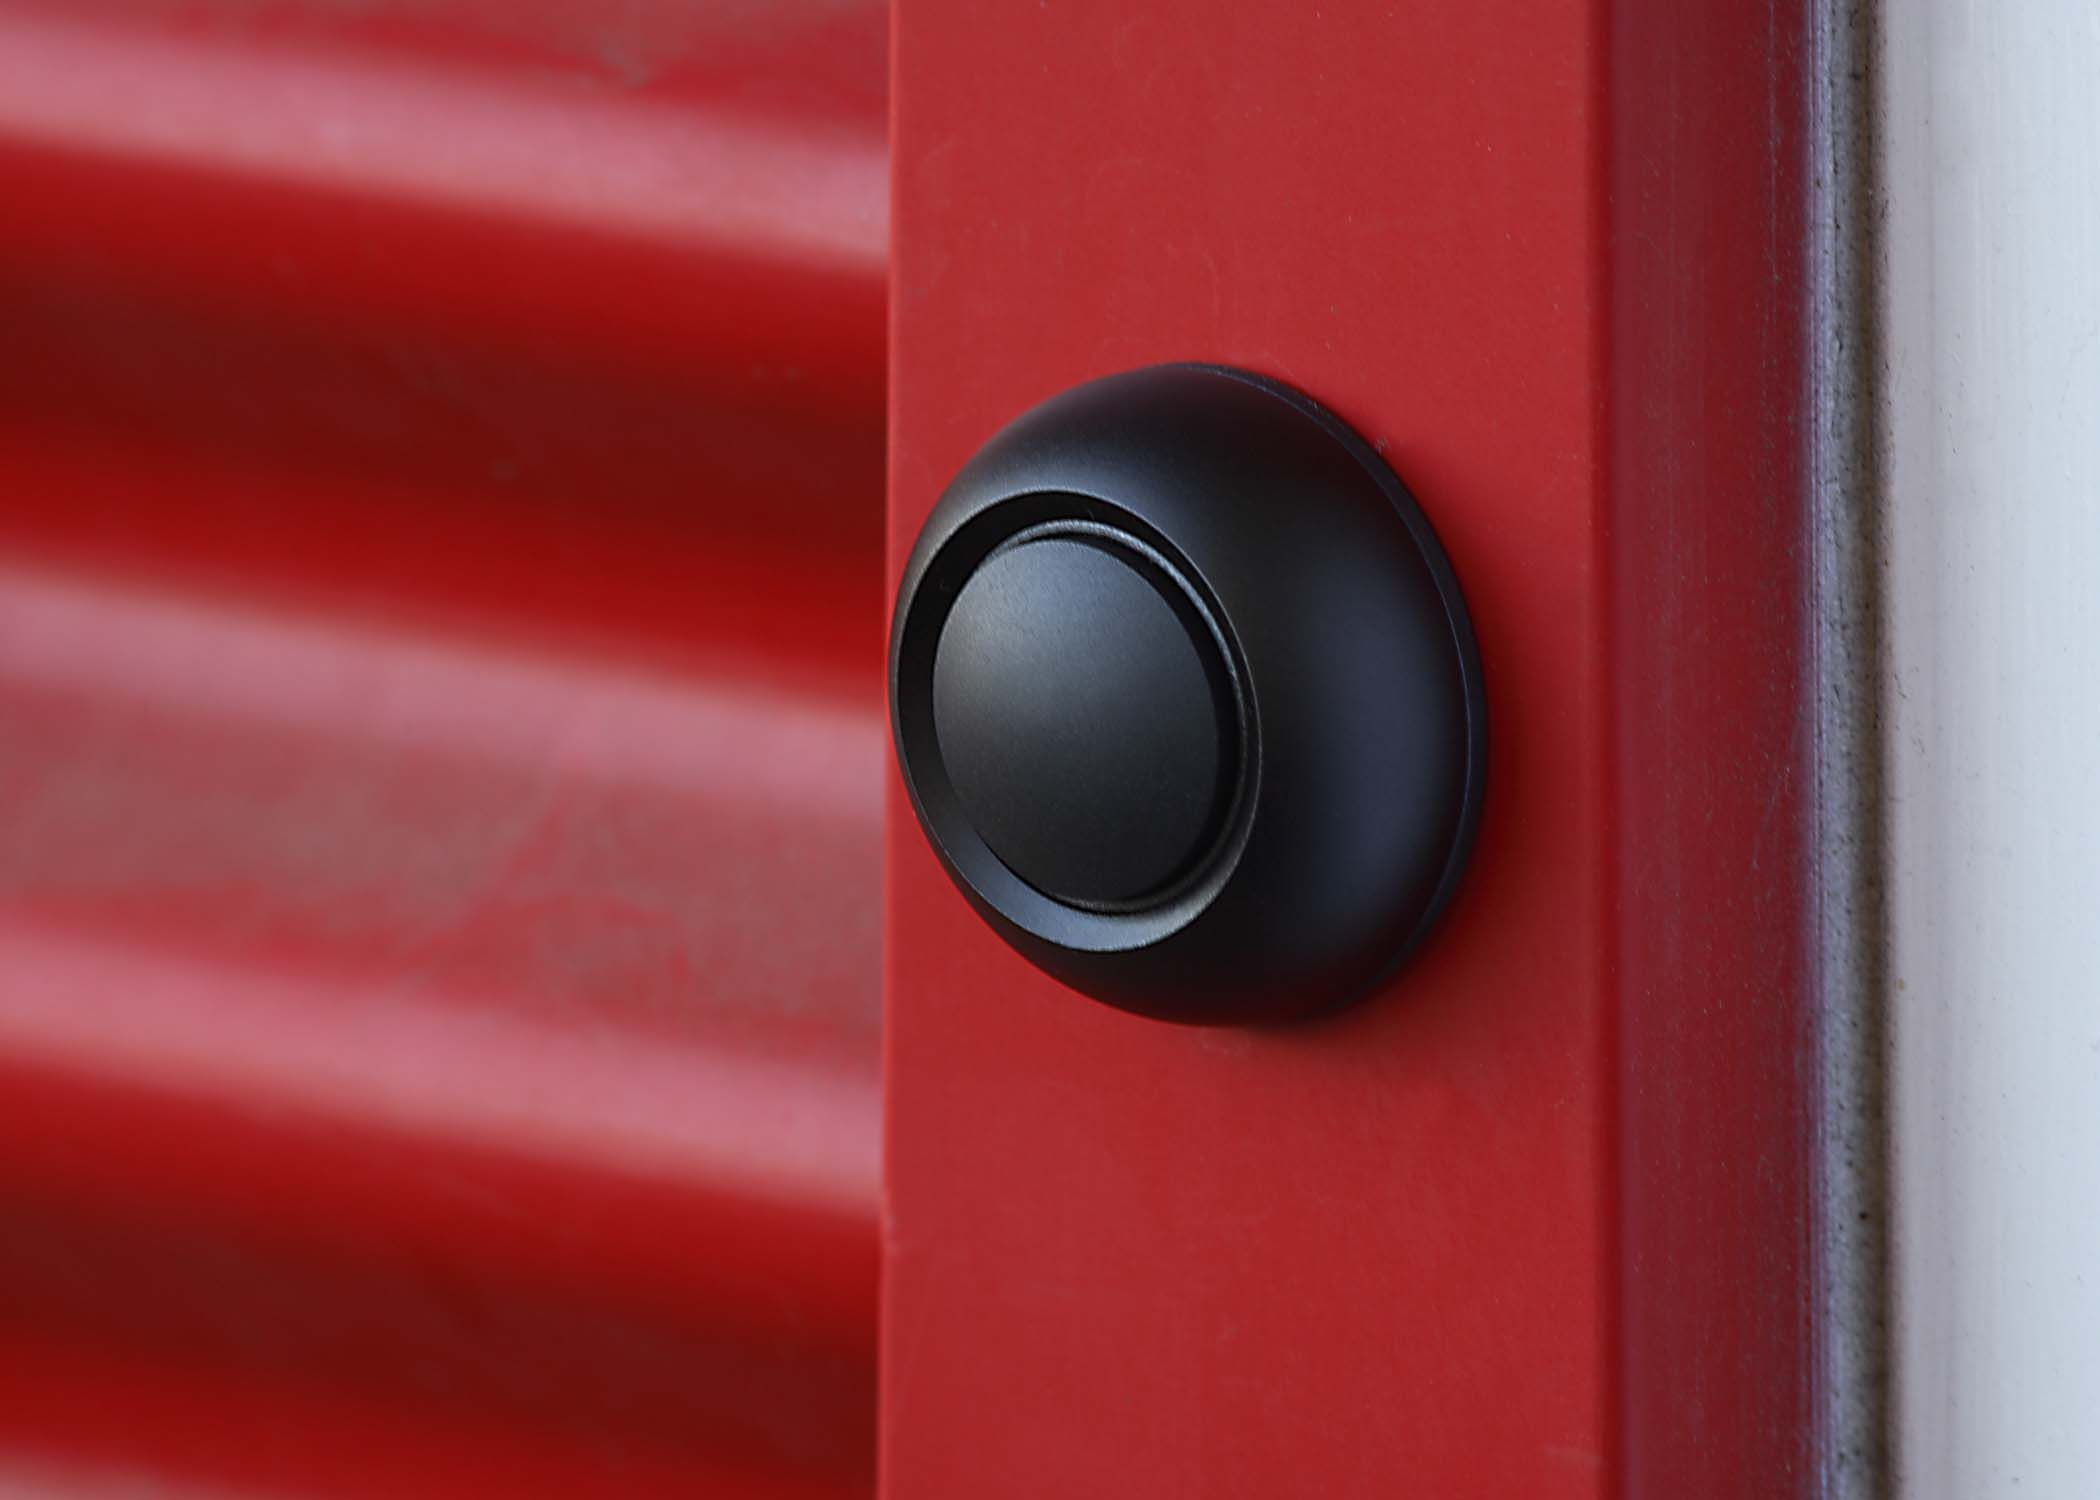 Phenomenal modern doorbell buttons from spOre future home ideas